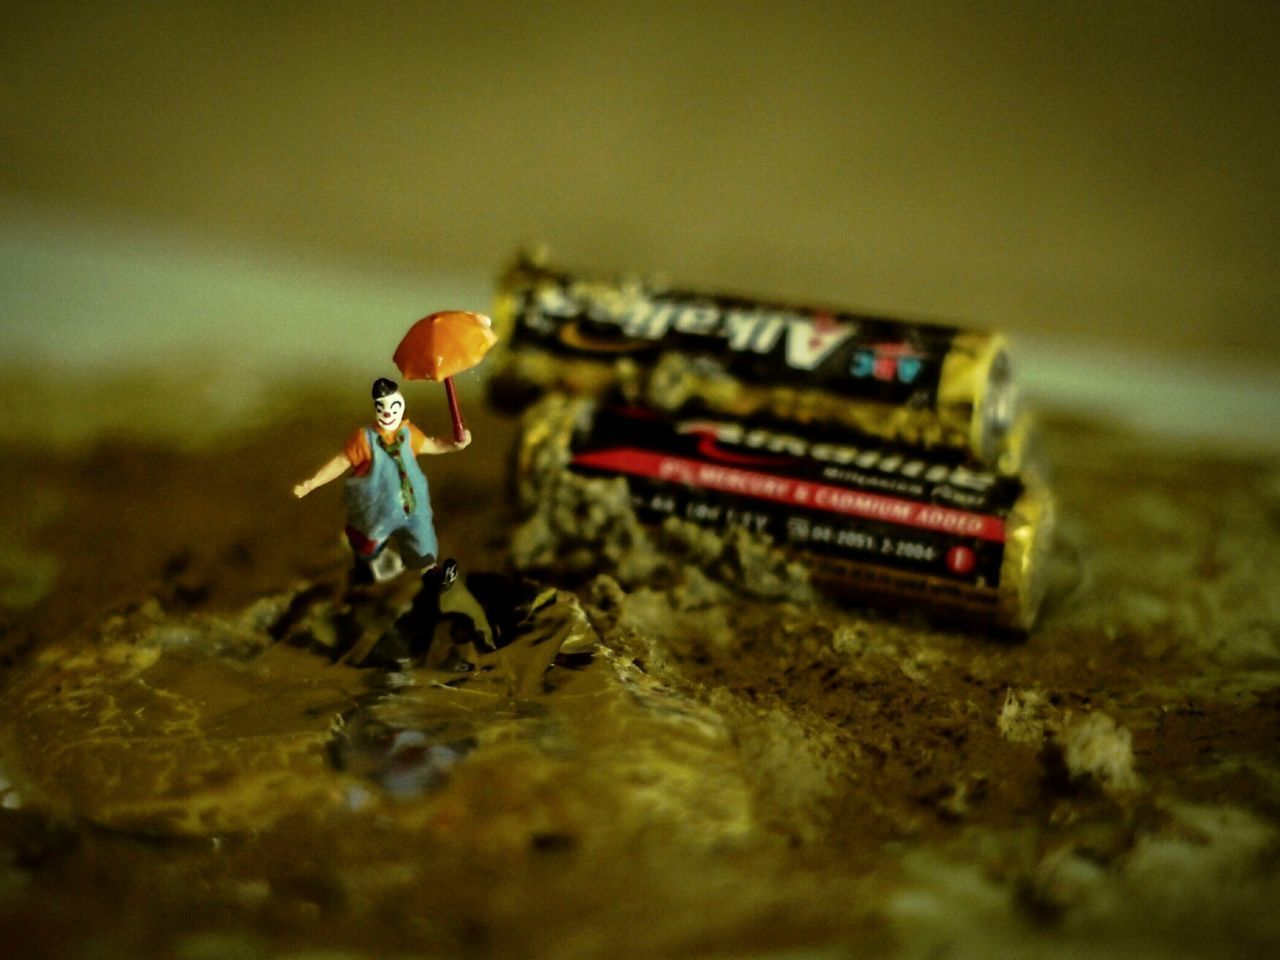 selective focus, toy, human representation, male likeness, figurine, close-up, representation, no people, art and craft, creativity, still life, indoors, nature, day, food, female likeness, small, field, surface level